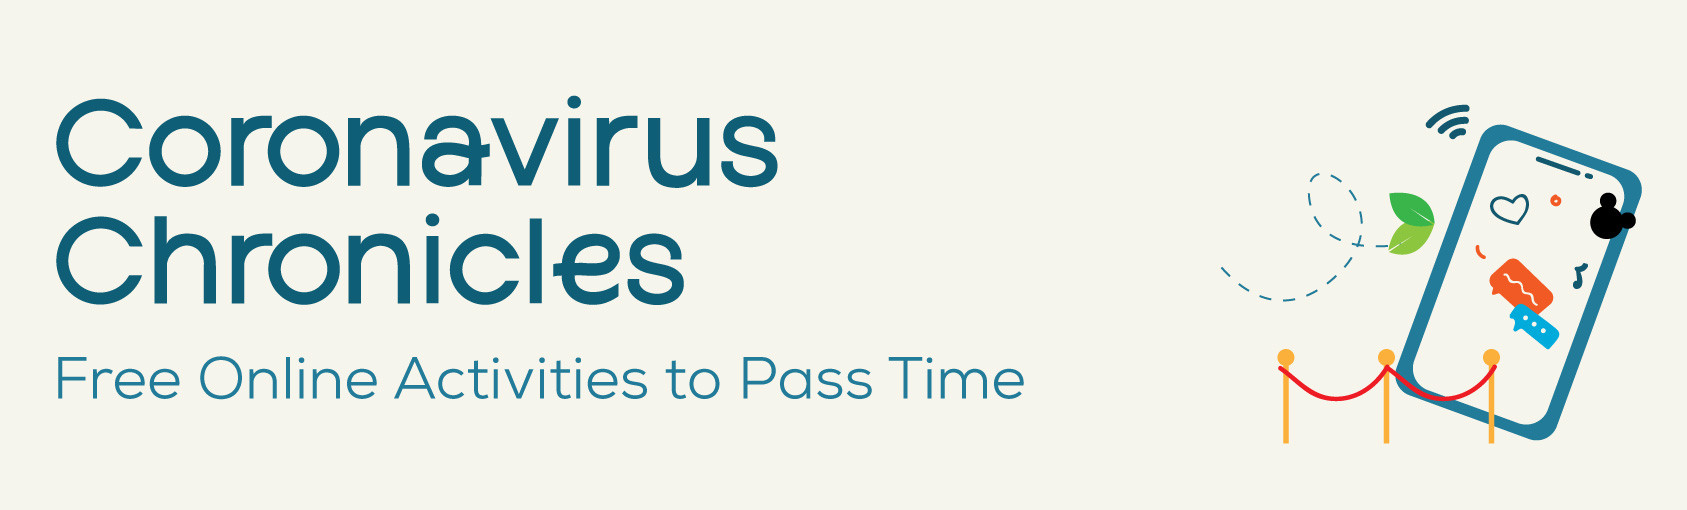 Coronavirus Chronicles: Free Online Activities to Pass Time banner